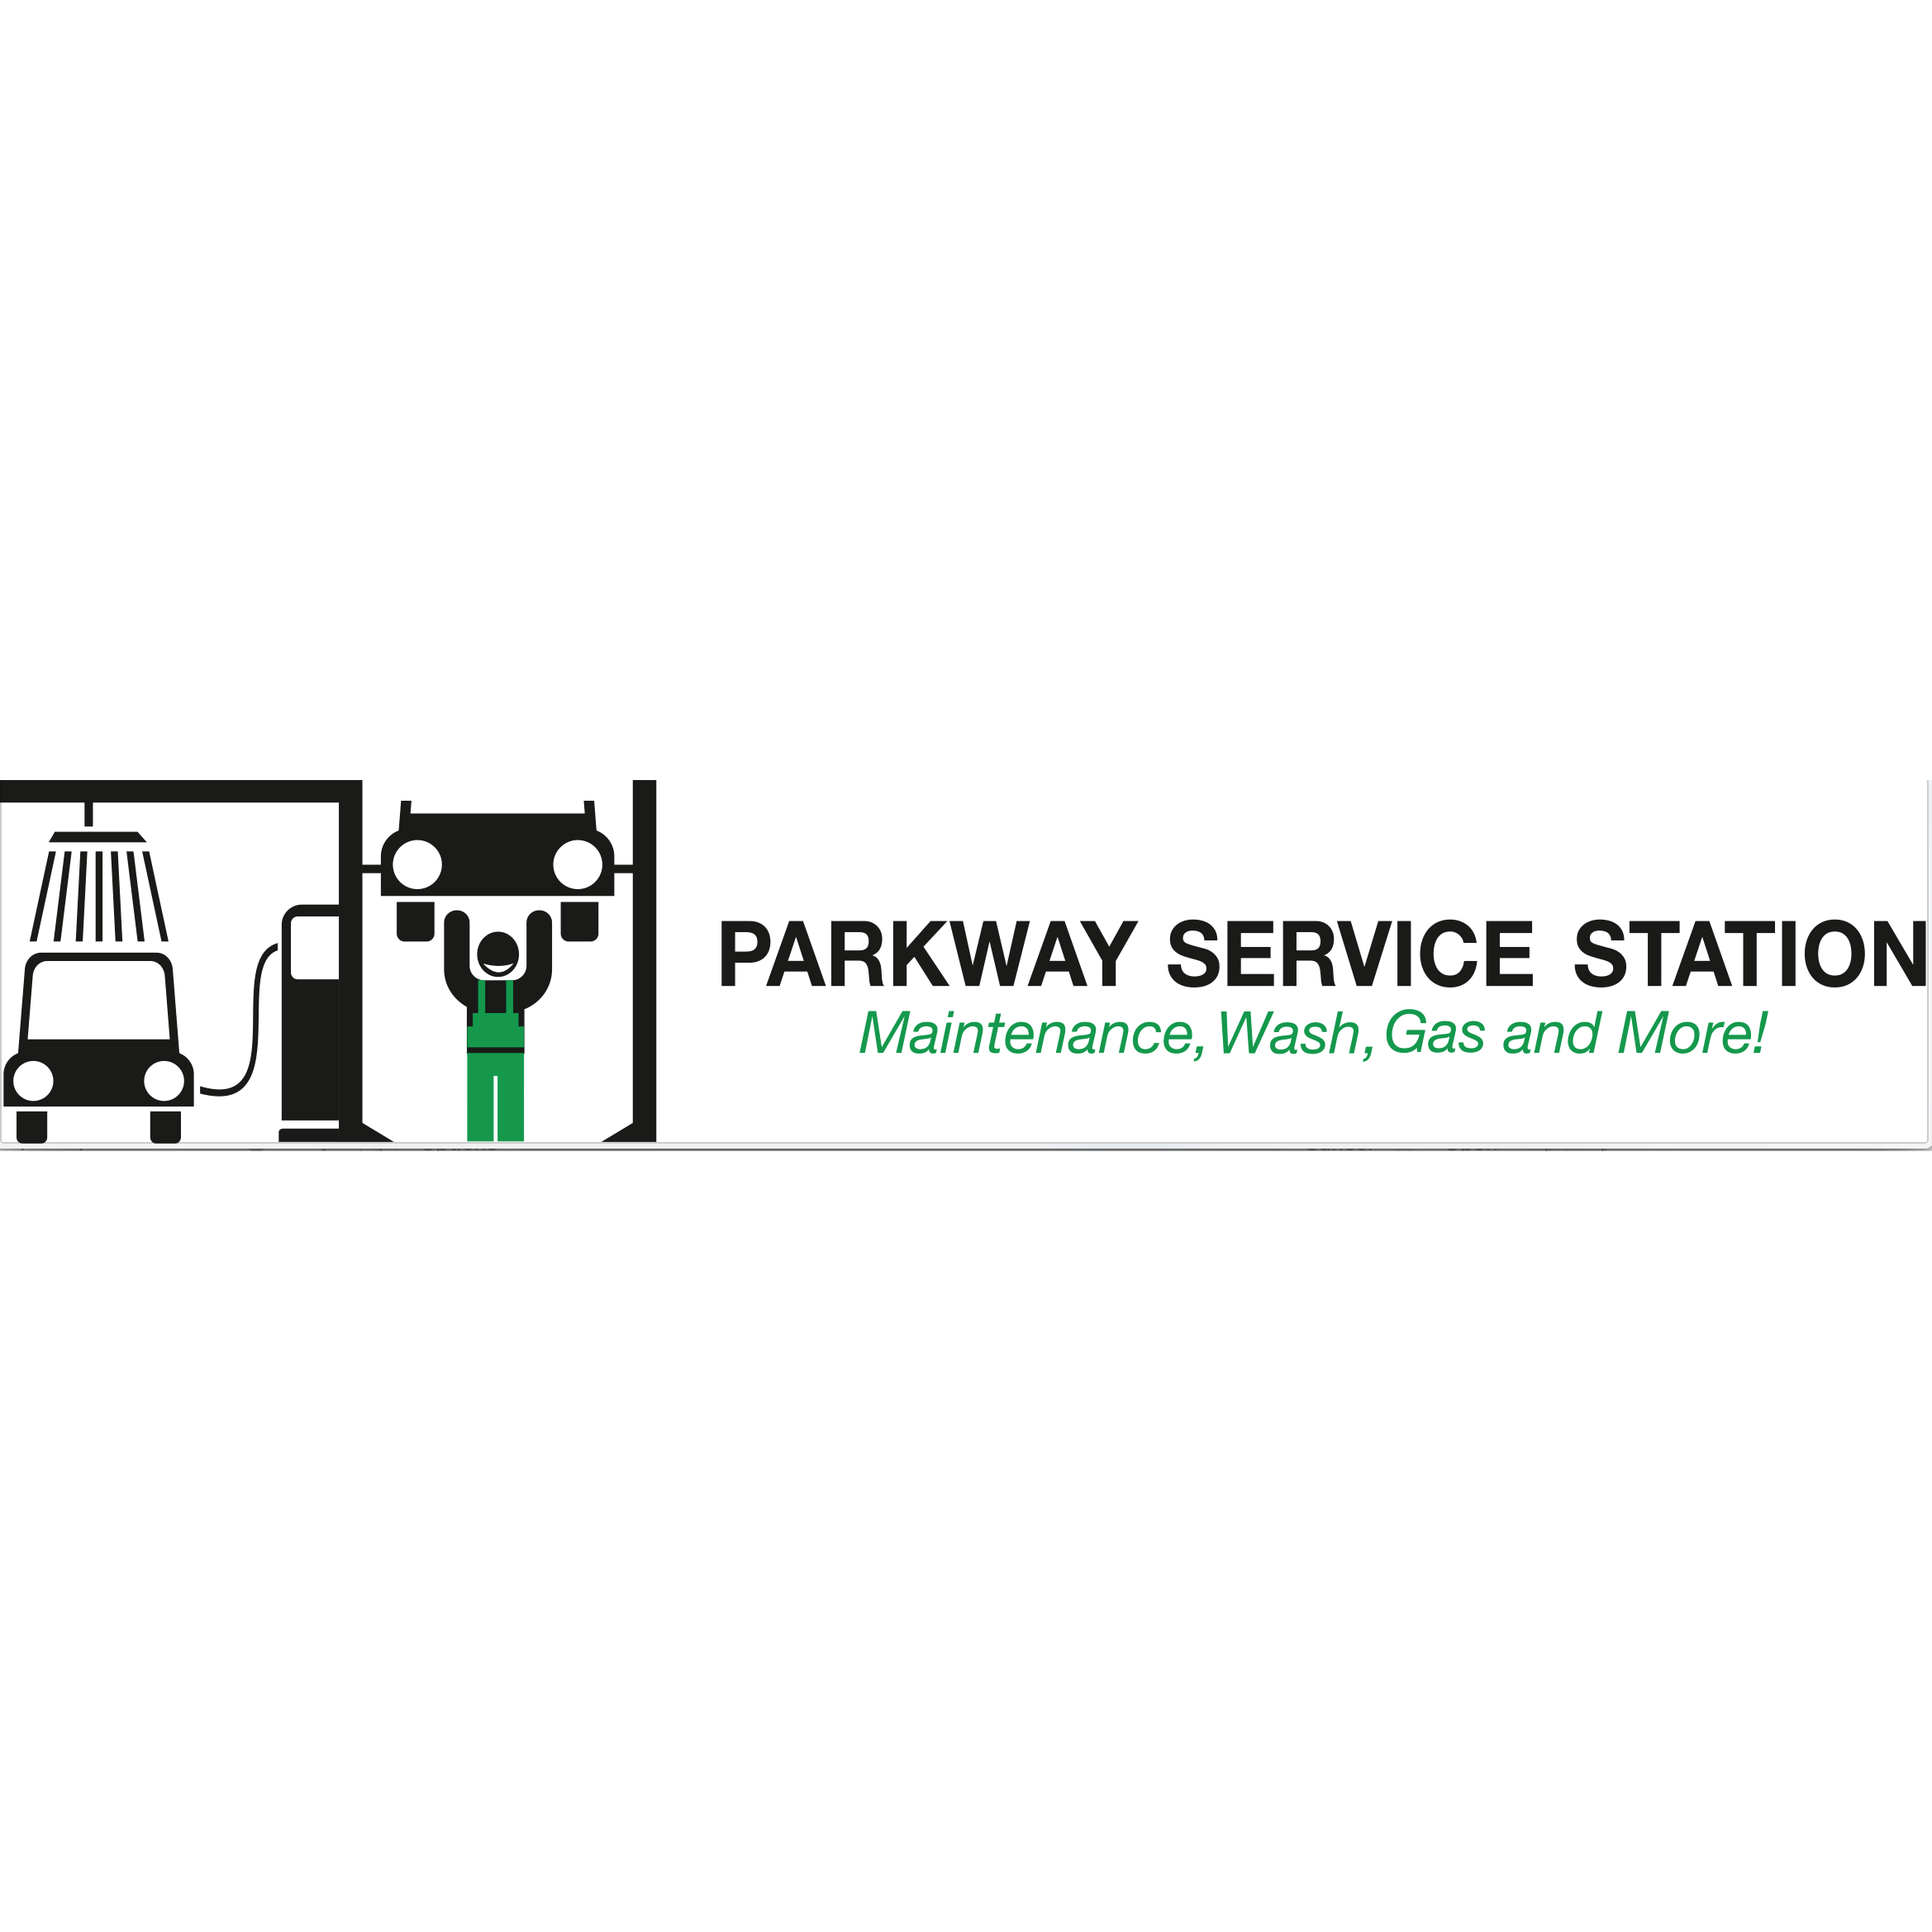 Parkway Service Station